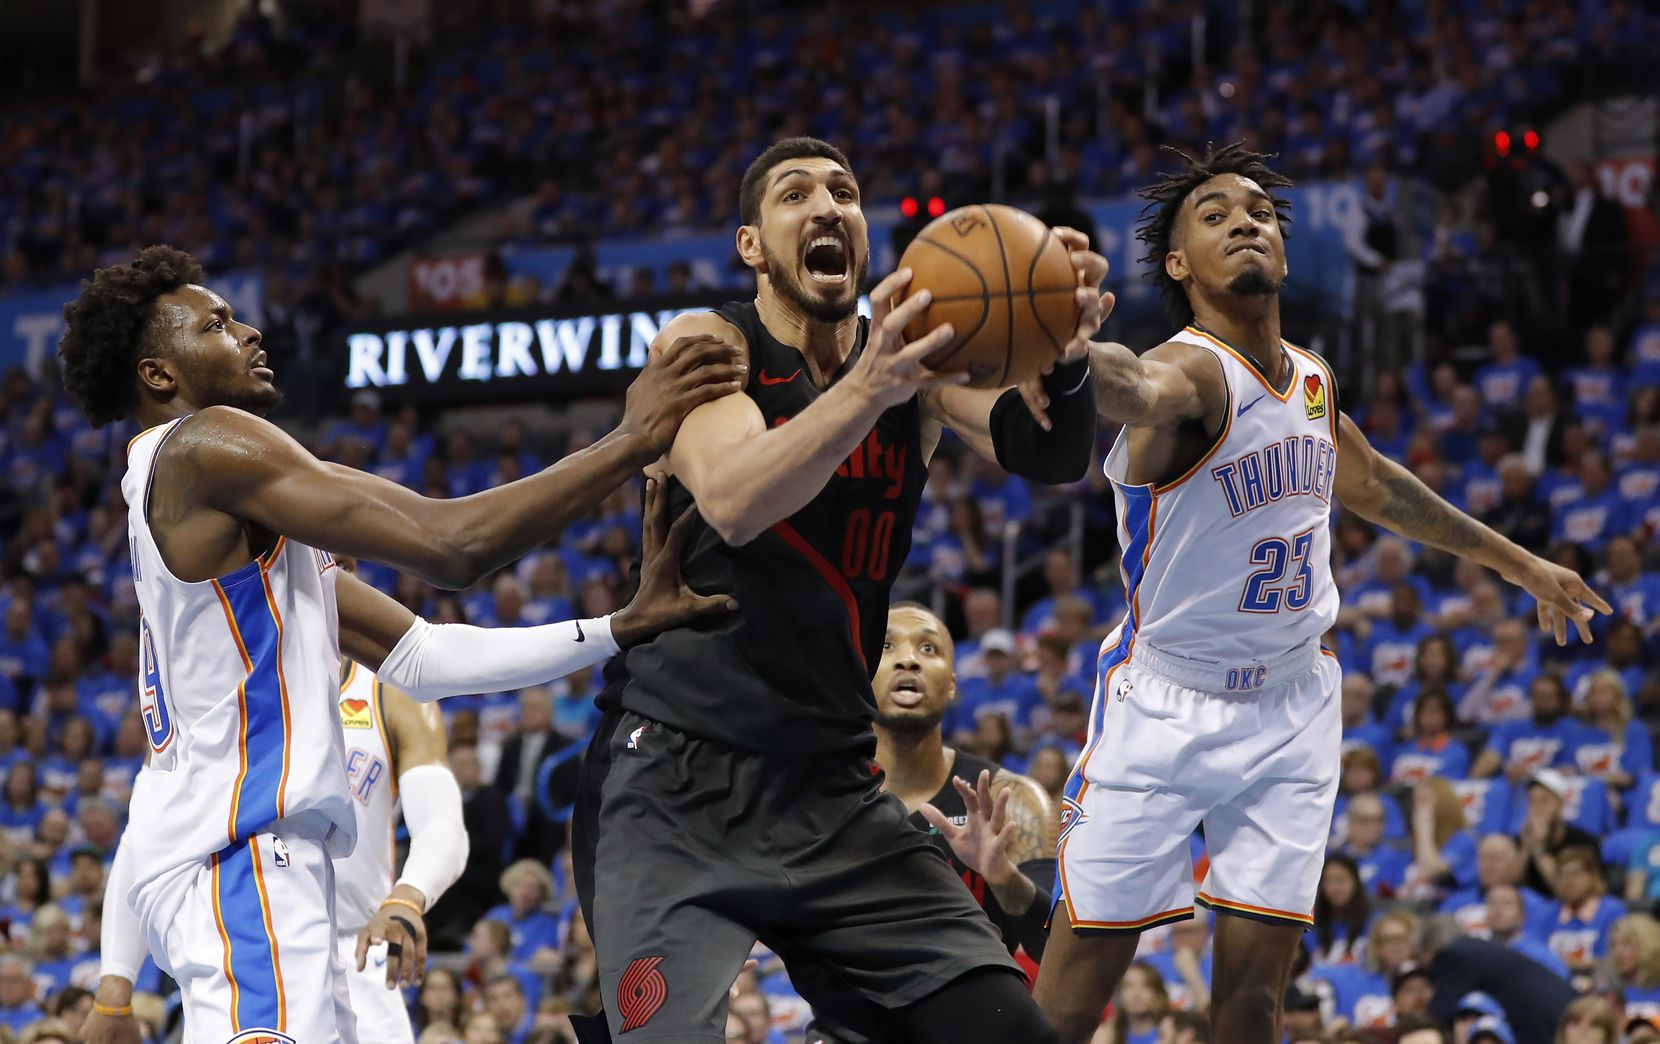 Portland Trail Blazers center Enes Kanter, center, Oklahoma City Thunder forward Jerami Grant, left, and guard Terrance Ferguson, right, compete for a rebound in the second half of Game 4 of an NBA basketball first-round playoff series Sunday, April 21, 2019, in Oklahoma City. Portland won 111-98. (AP Photo/Alonzo Adams)